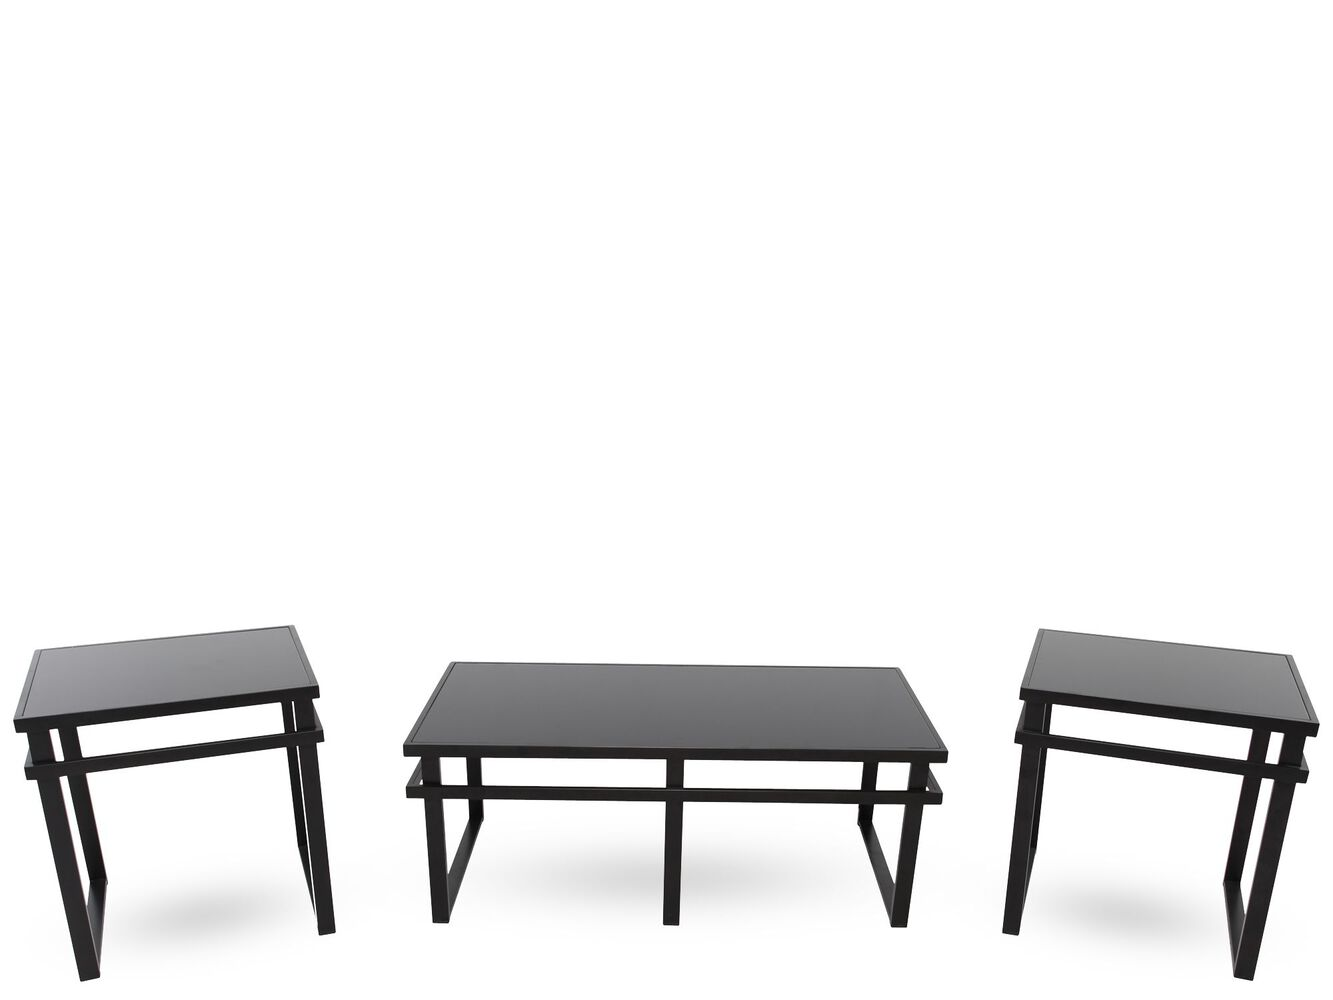 Three Piece Contemporary Coffee Table Set In Black Mathis Brothers